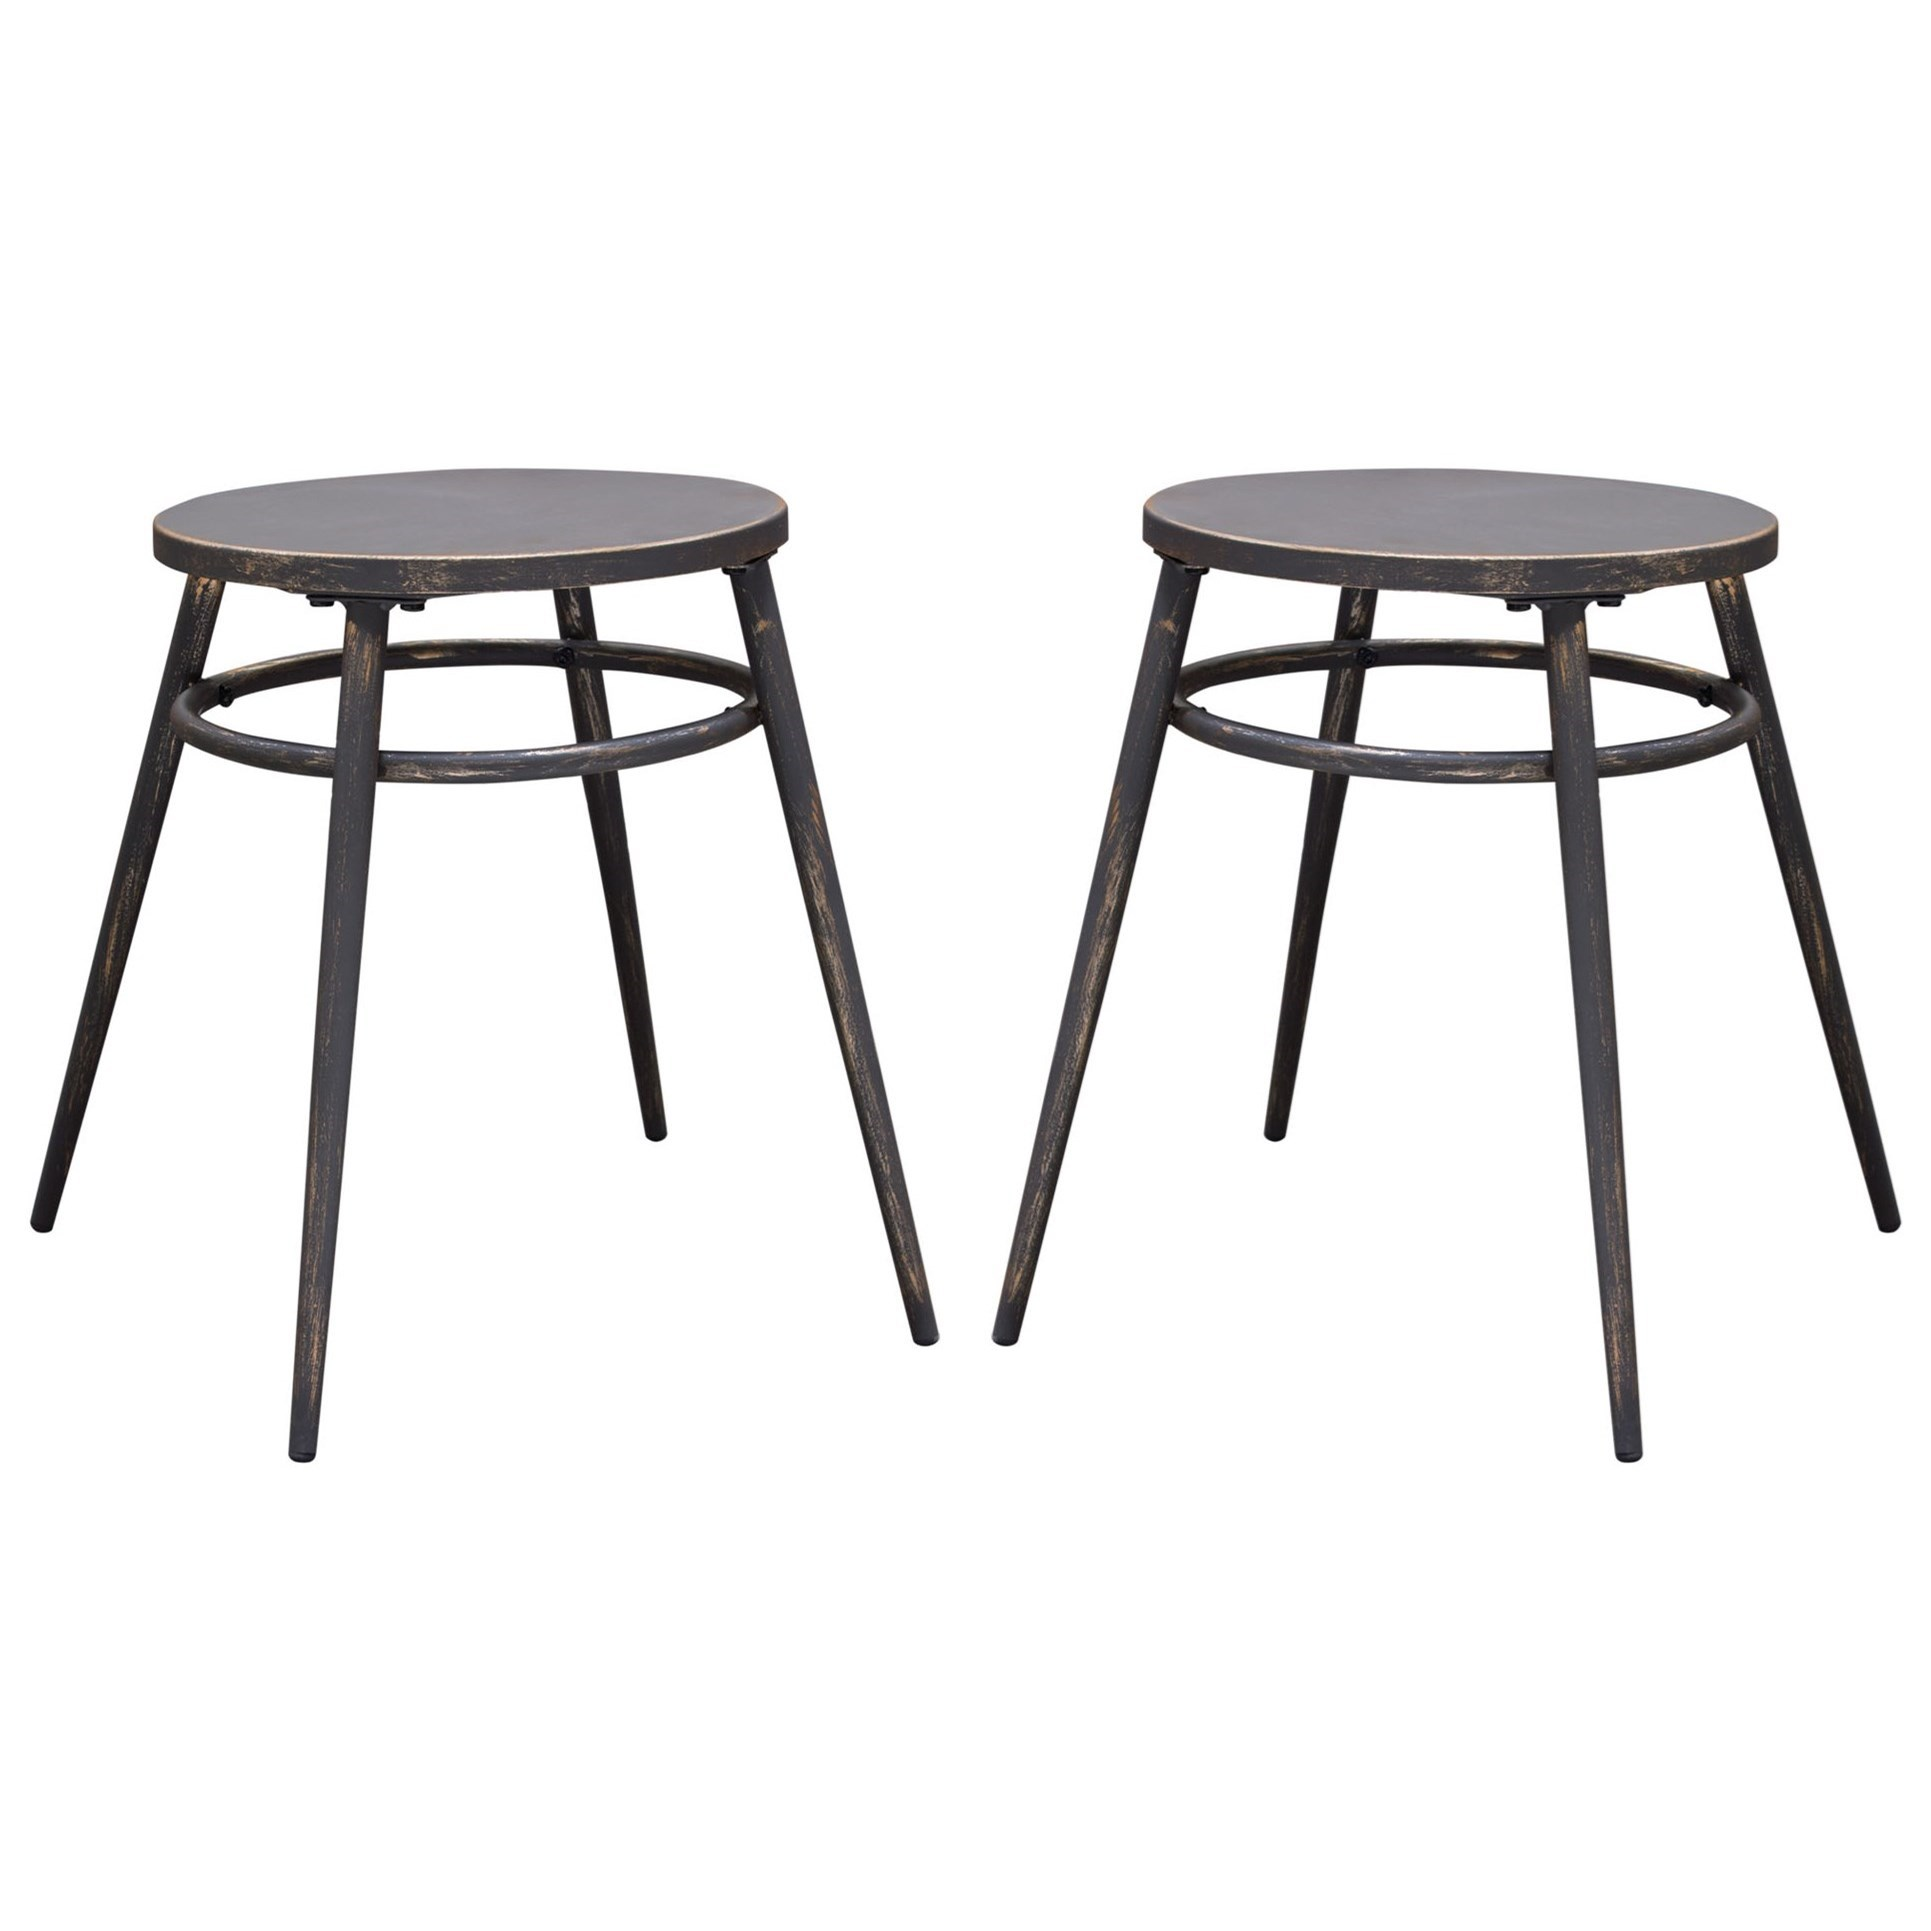 Set of Two Dining Stools